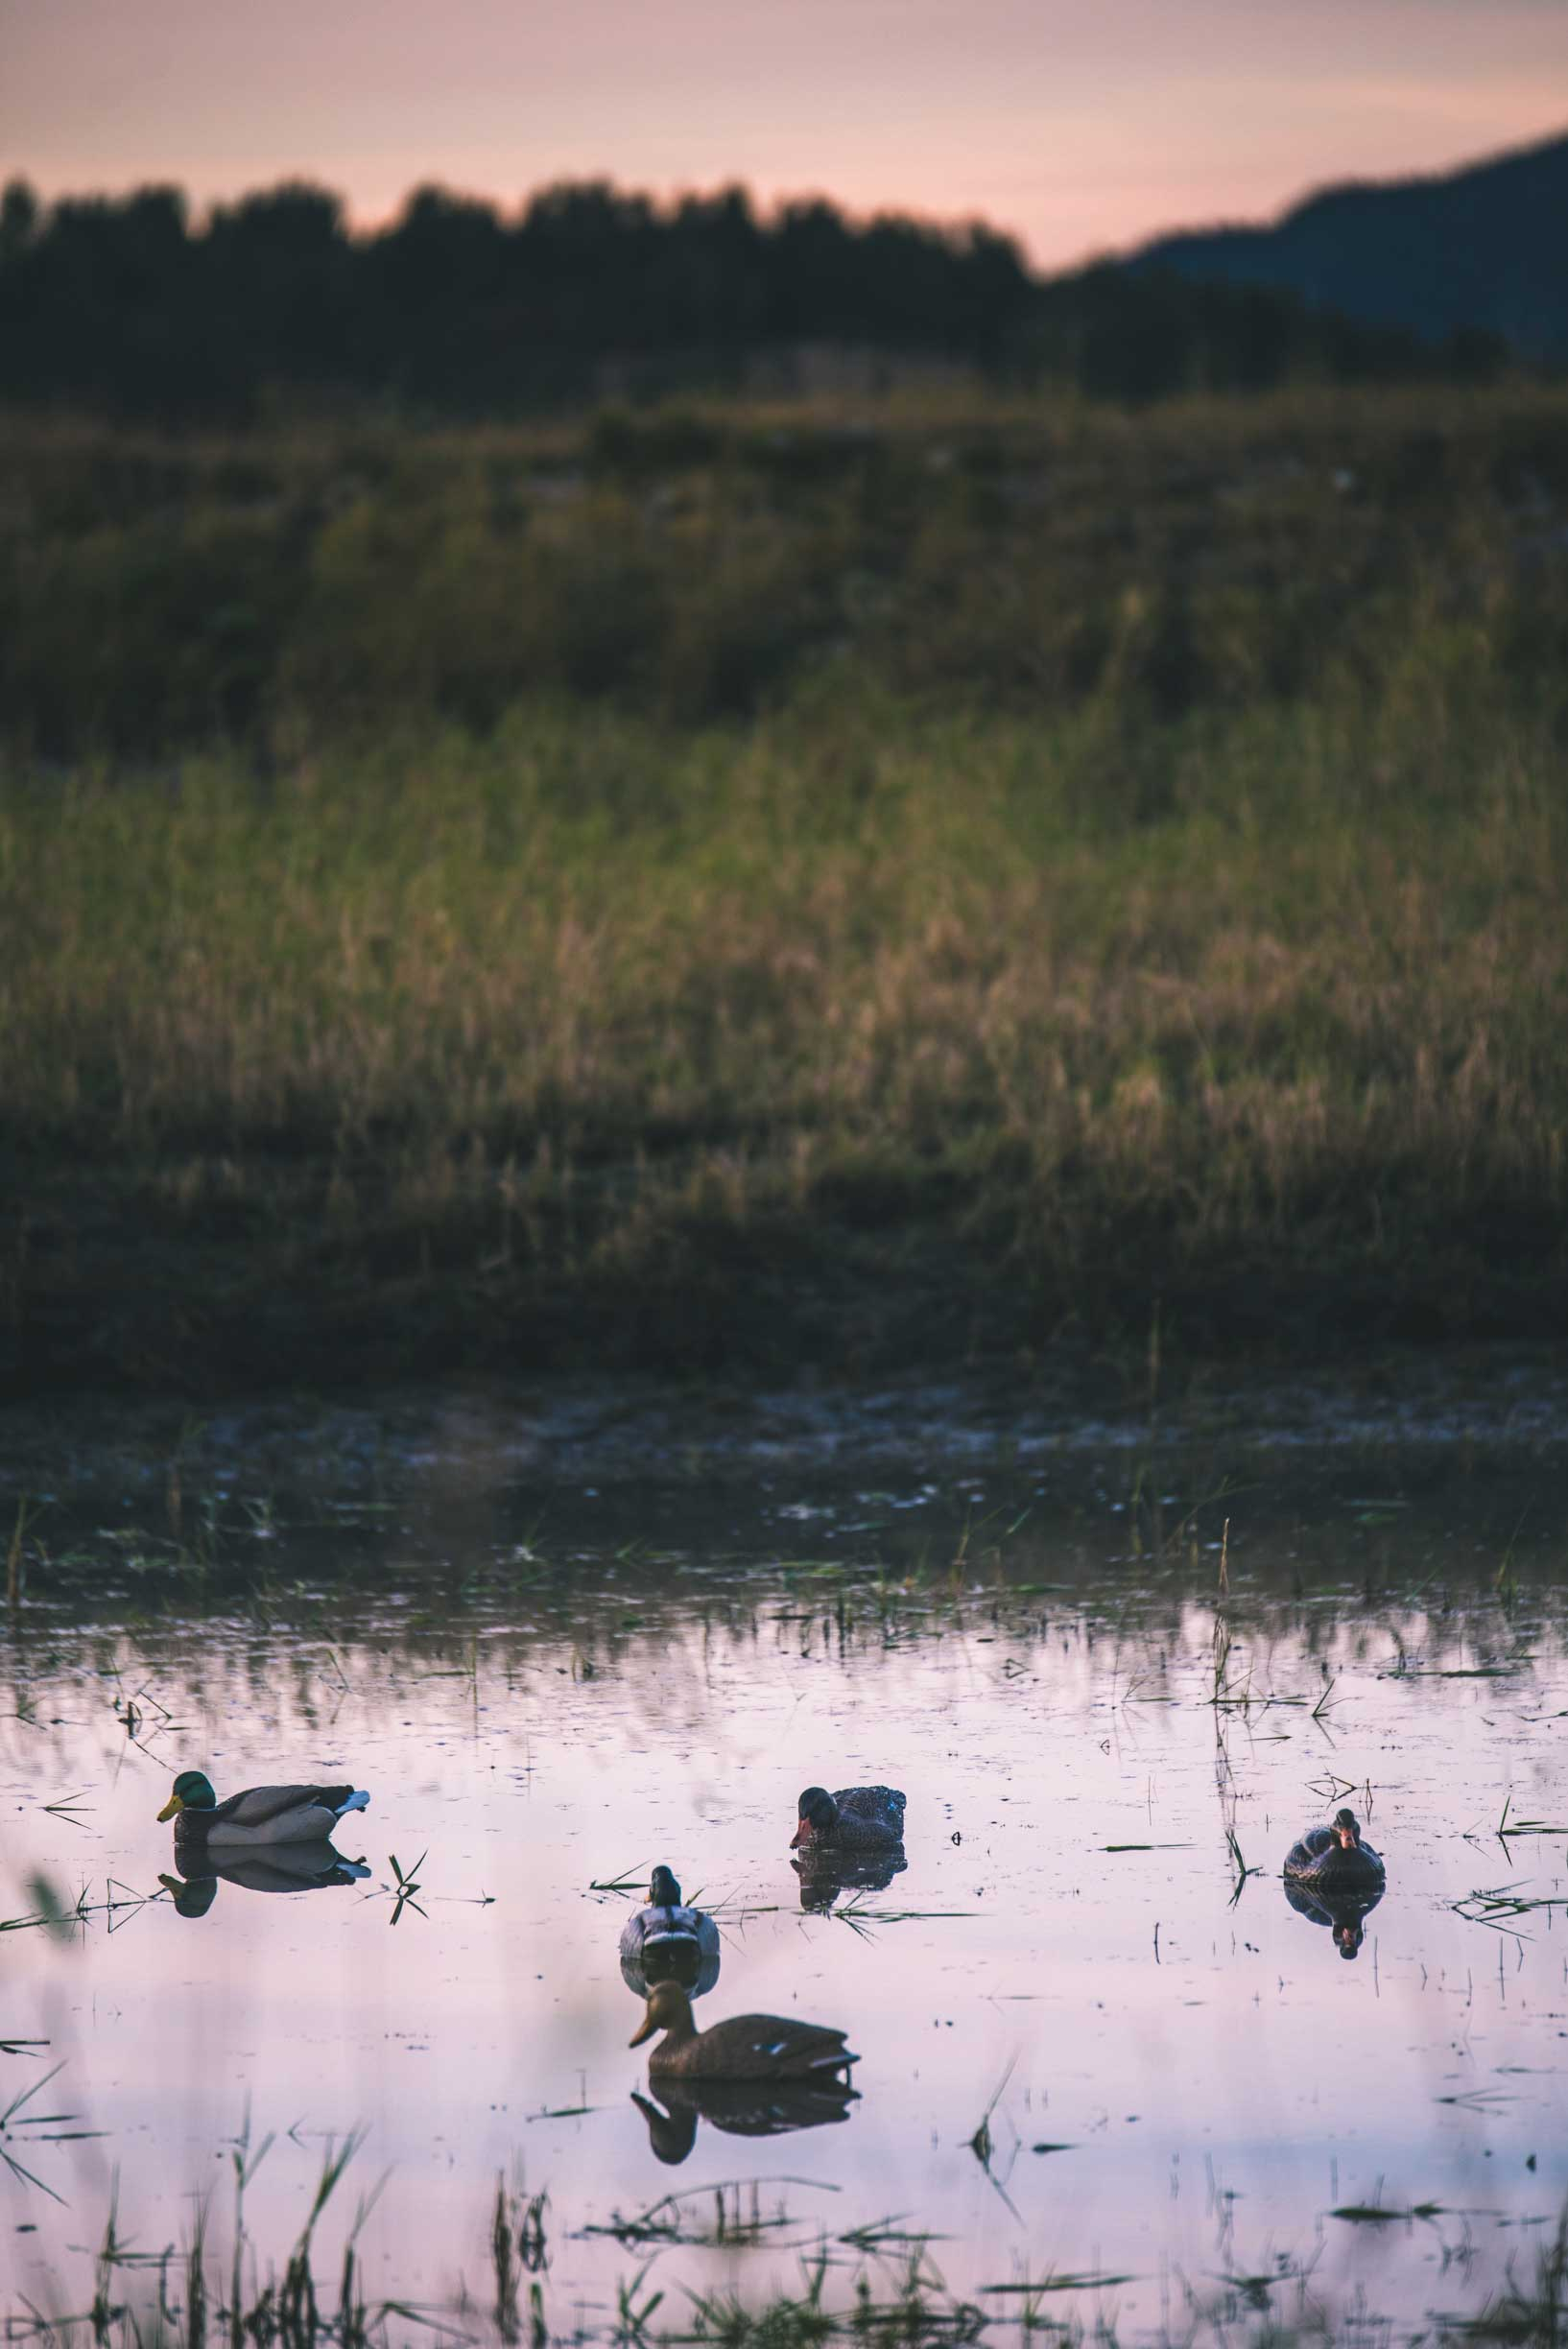 There is no shortage of places to hunt waterfowl in British Columbia. Most lakes, rivers and wetlands will hold ample numbers of birds. Pictured, a few decoys are set up to entice birds passing by. Photo by Curtis Hall.